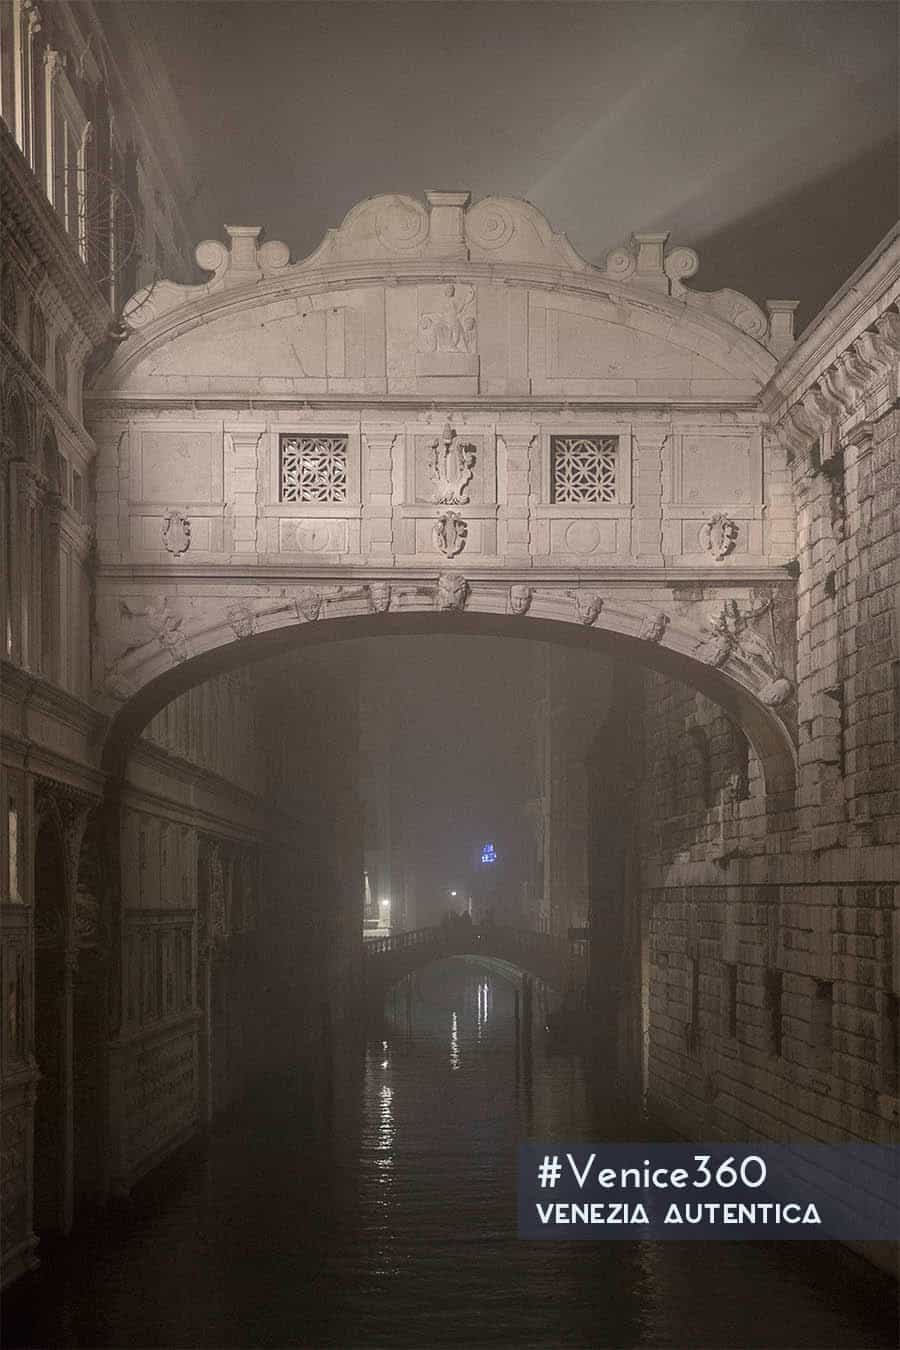 The Bridge of Sighs in Venice is often seen as a symbol of love by couples. Quite the oppiste the sighs on this beautiful bridge were of sorrow: it was the last occasion for detainees to see the light before being locked up in prison forever.